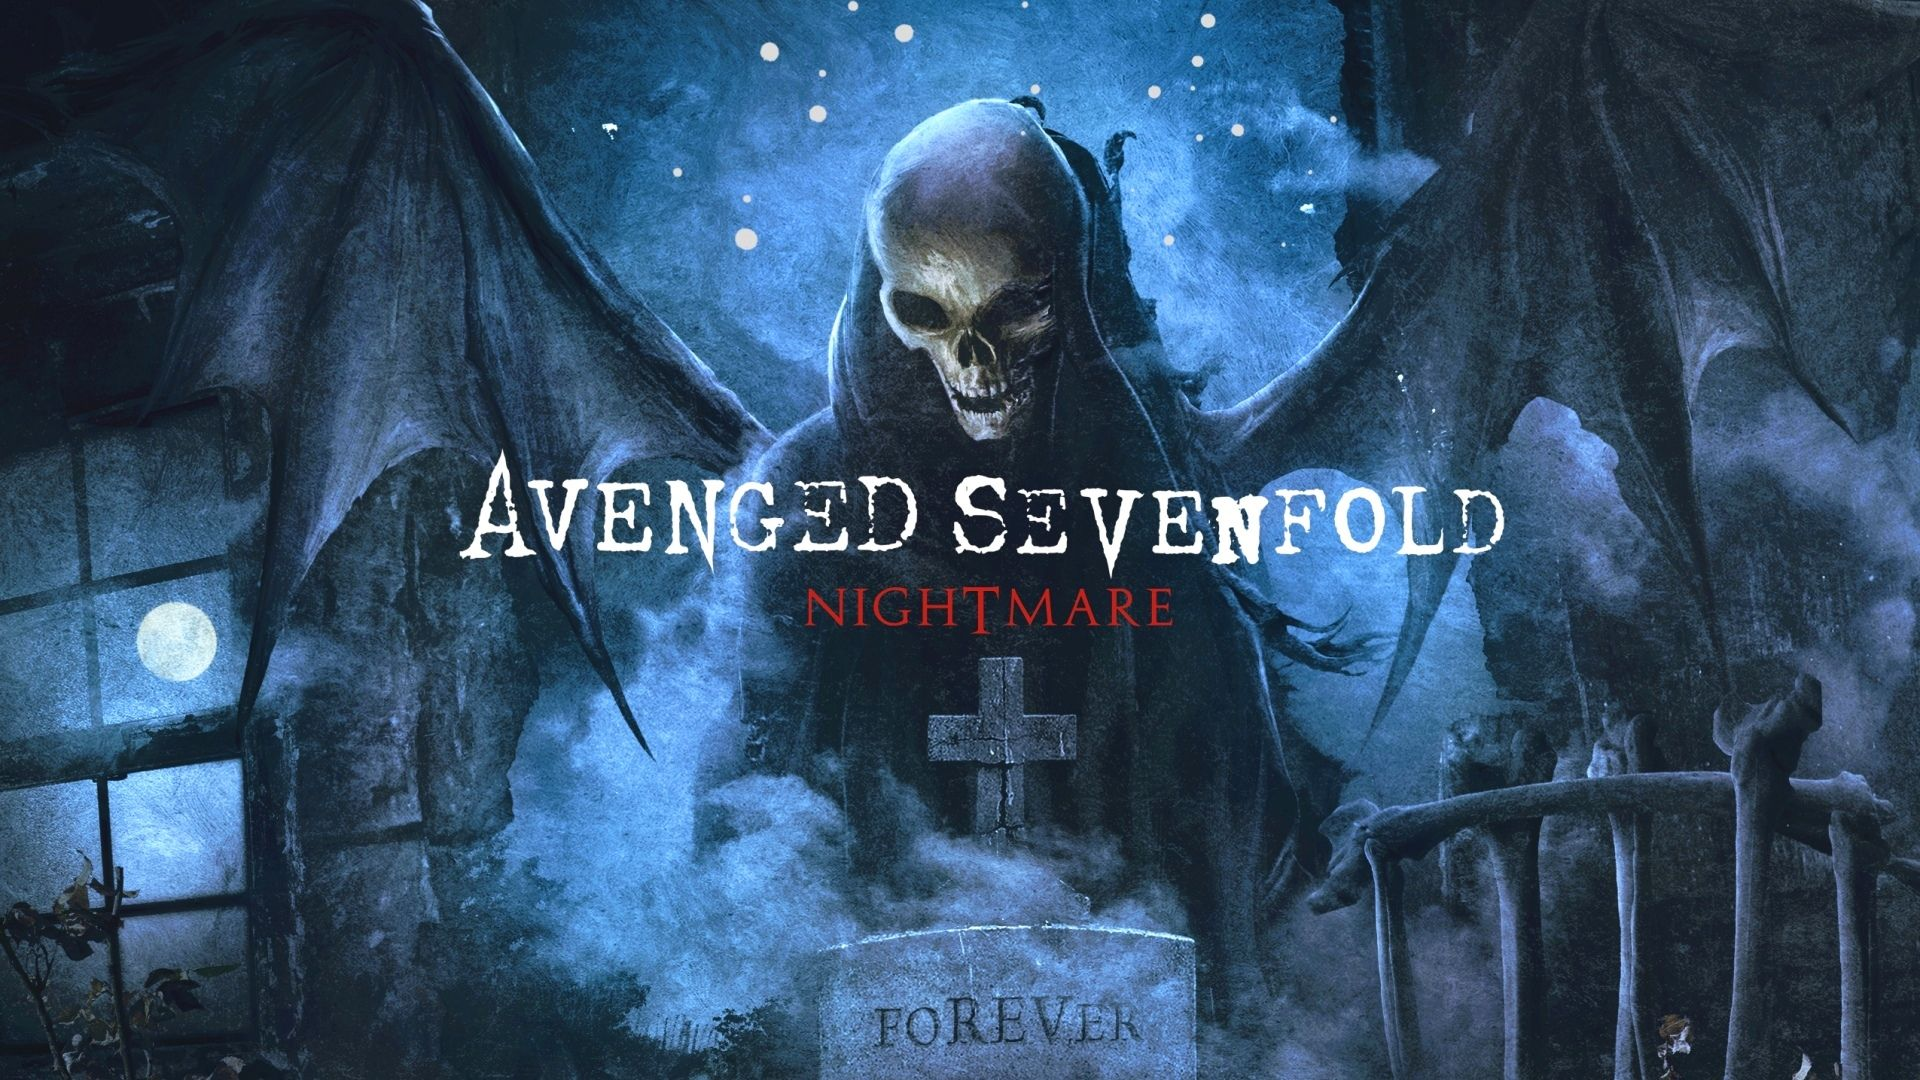 Music Avenged Sevenfold desktop wallpaper nr 54644 by 1920x1080